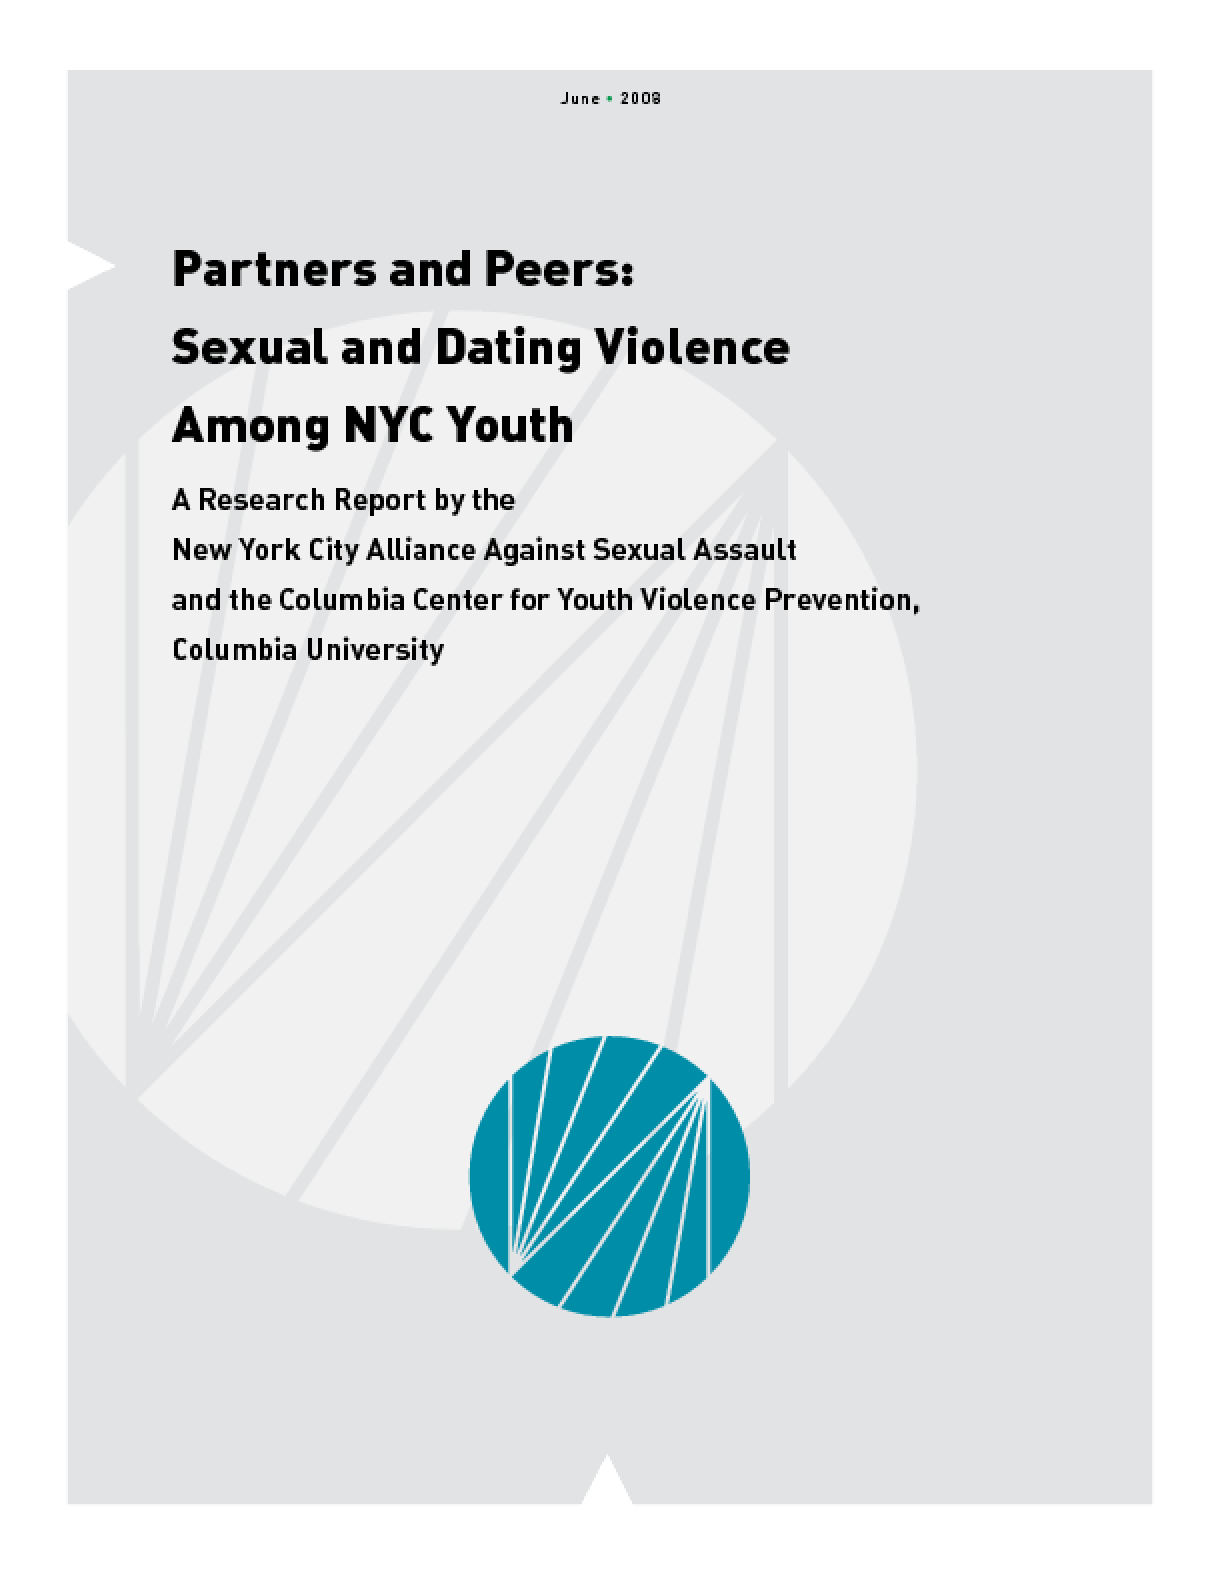 Partners and Peers: Sexual and Dating Violence Among NYC Youth